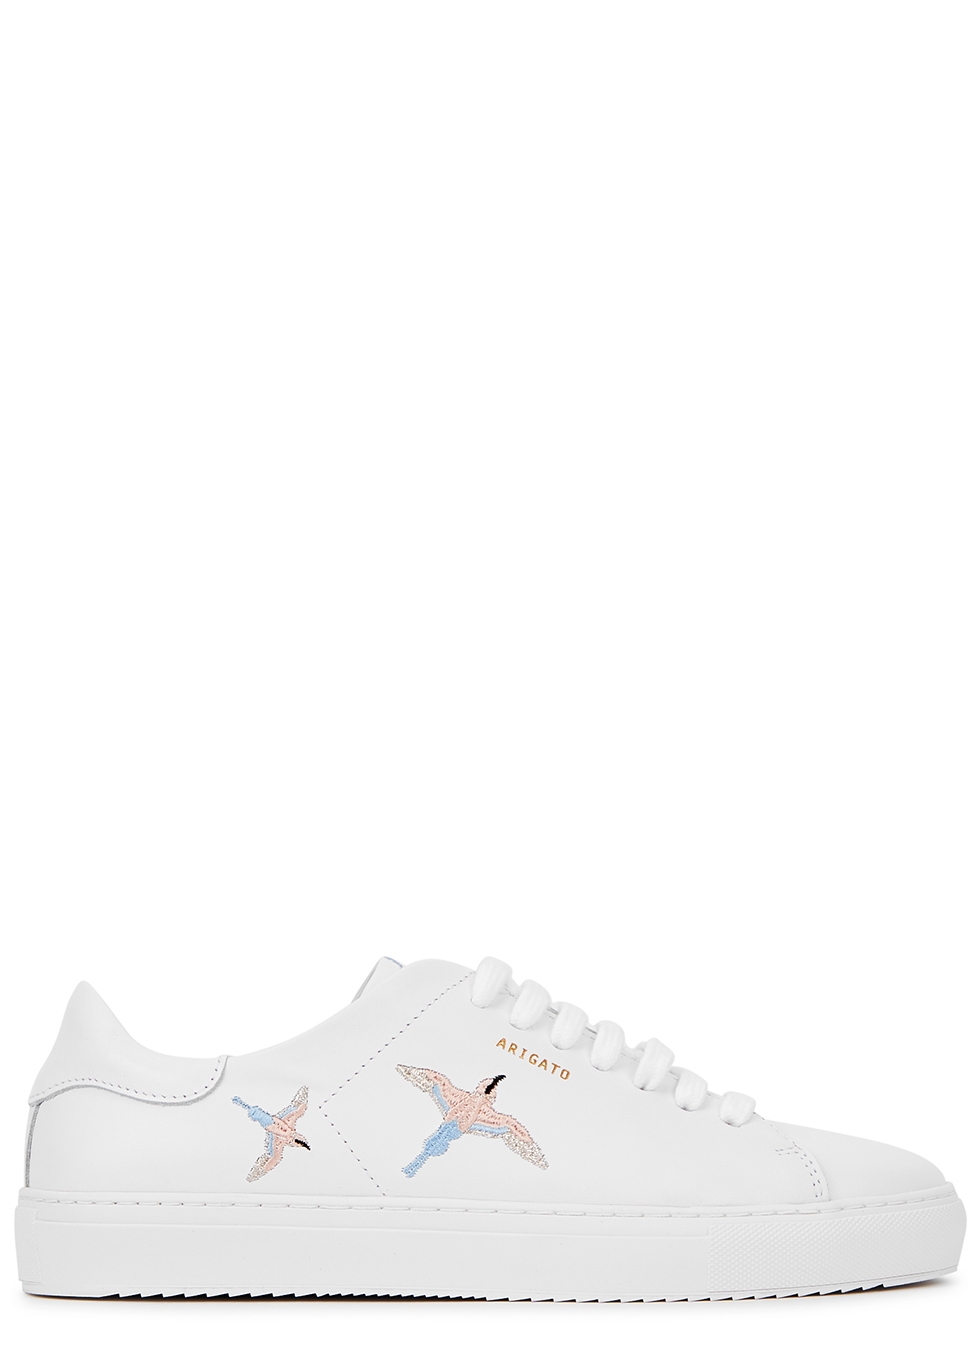 Axel Arigato Clean 90 white embroidered